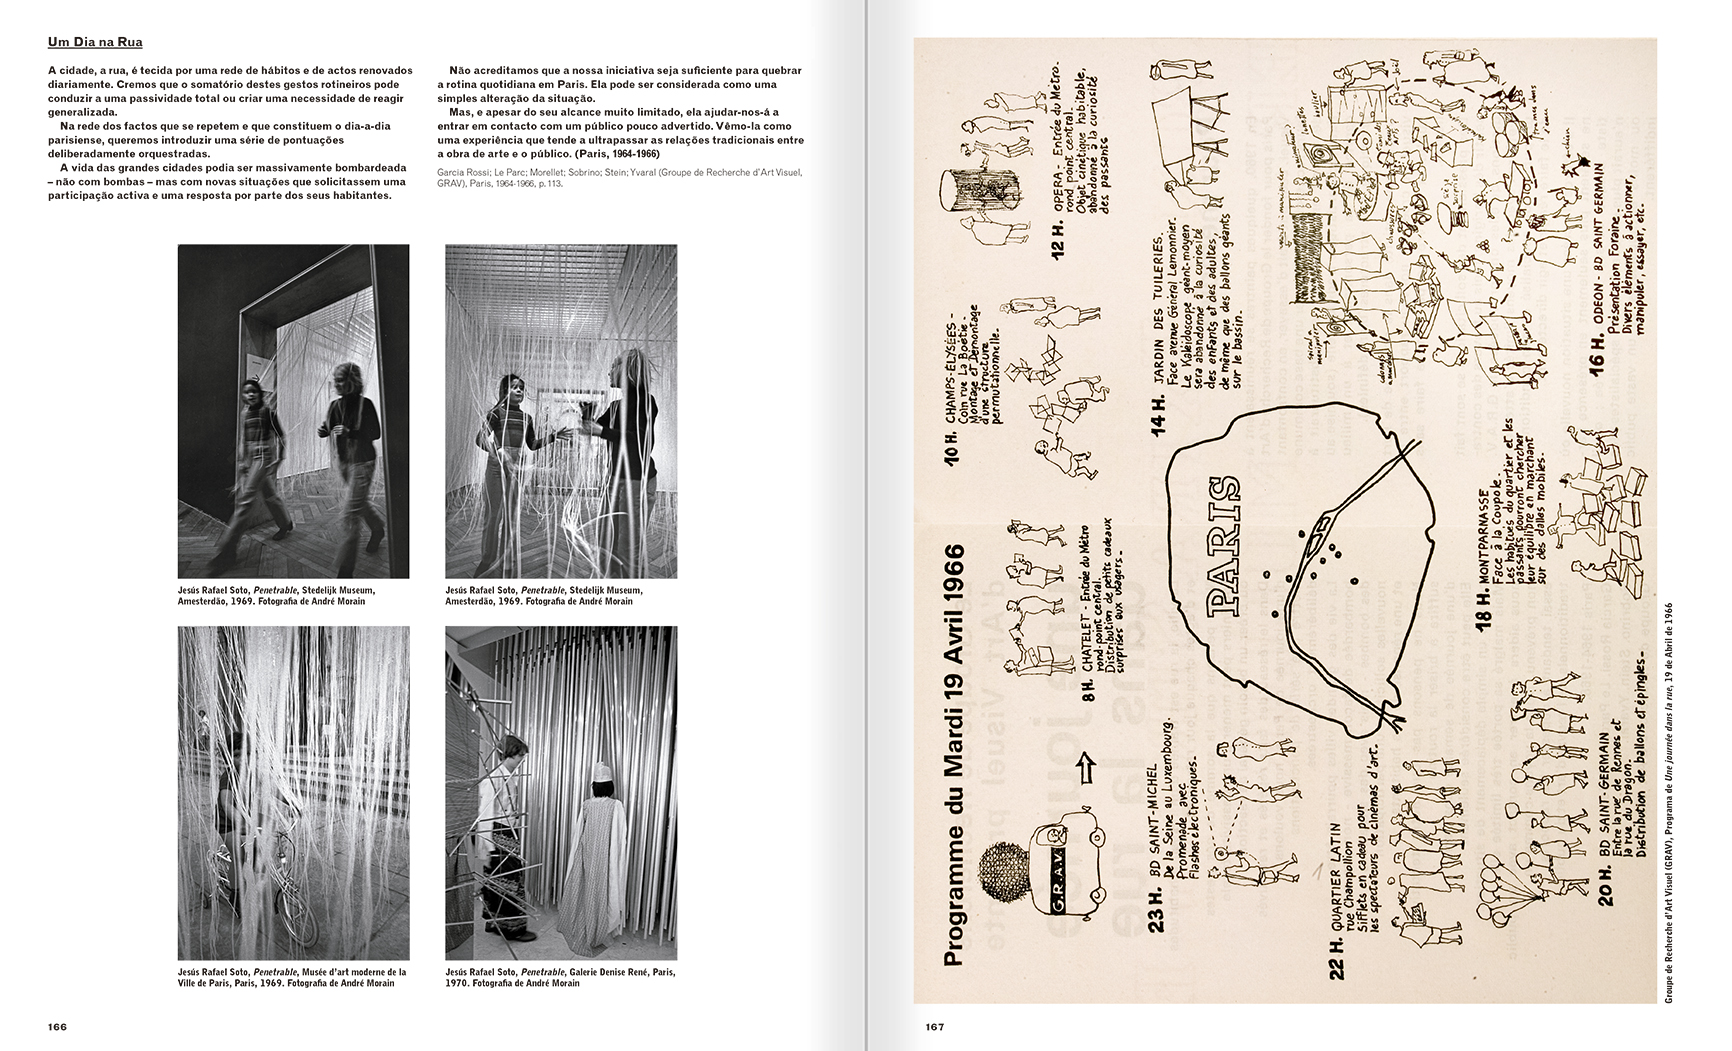 Selection from the catalogue 'A Theater without Theater', pages 166 and 167